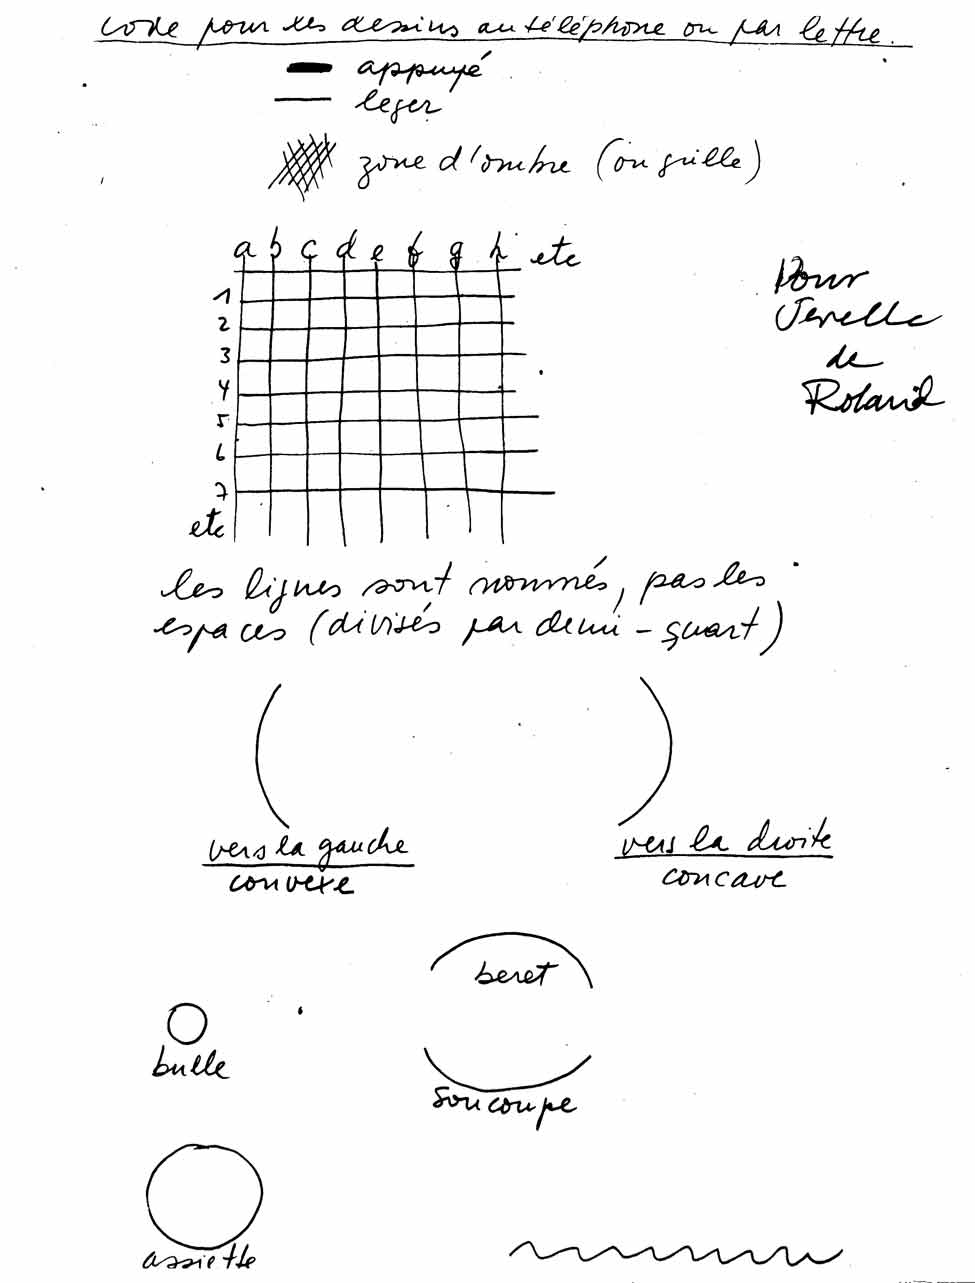 Once Roland sent me a humorous but carefully conceived code he created in order to send drawings over the telephone.